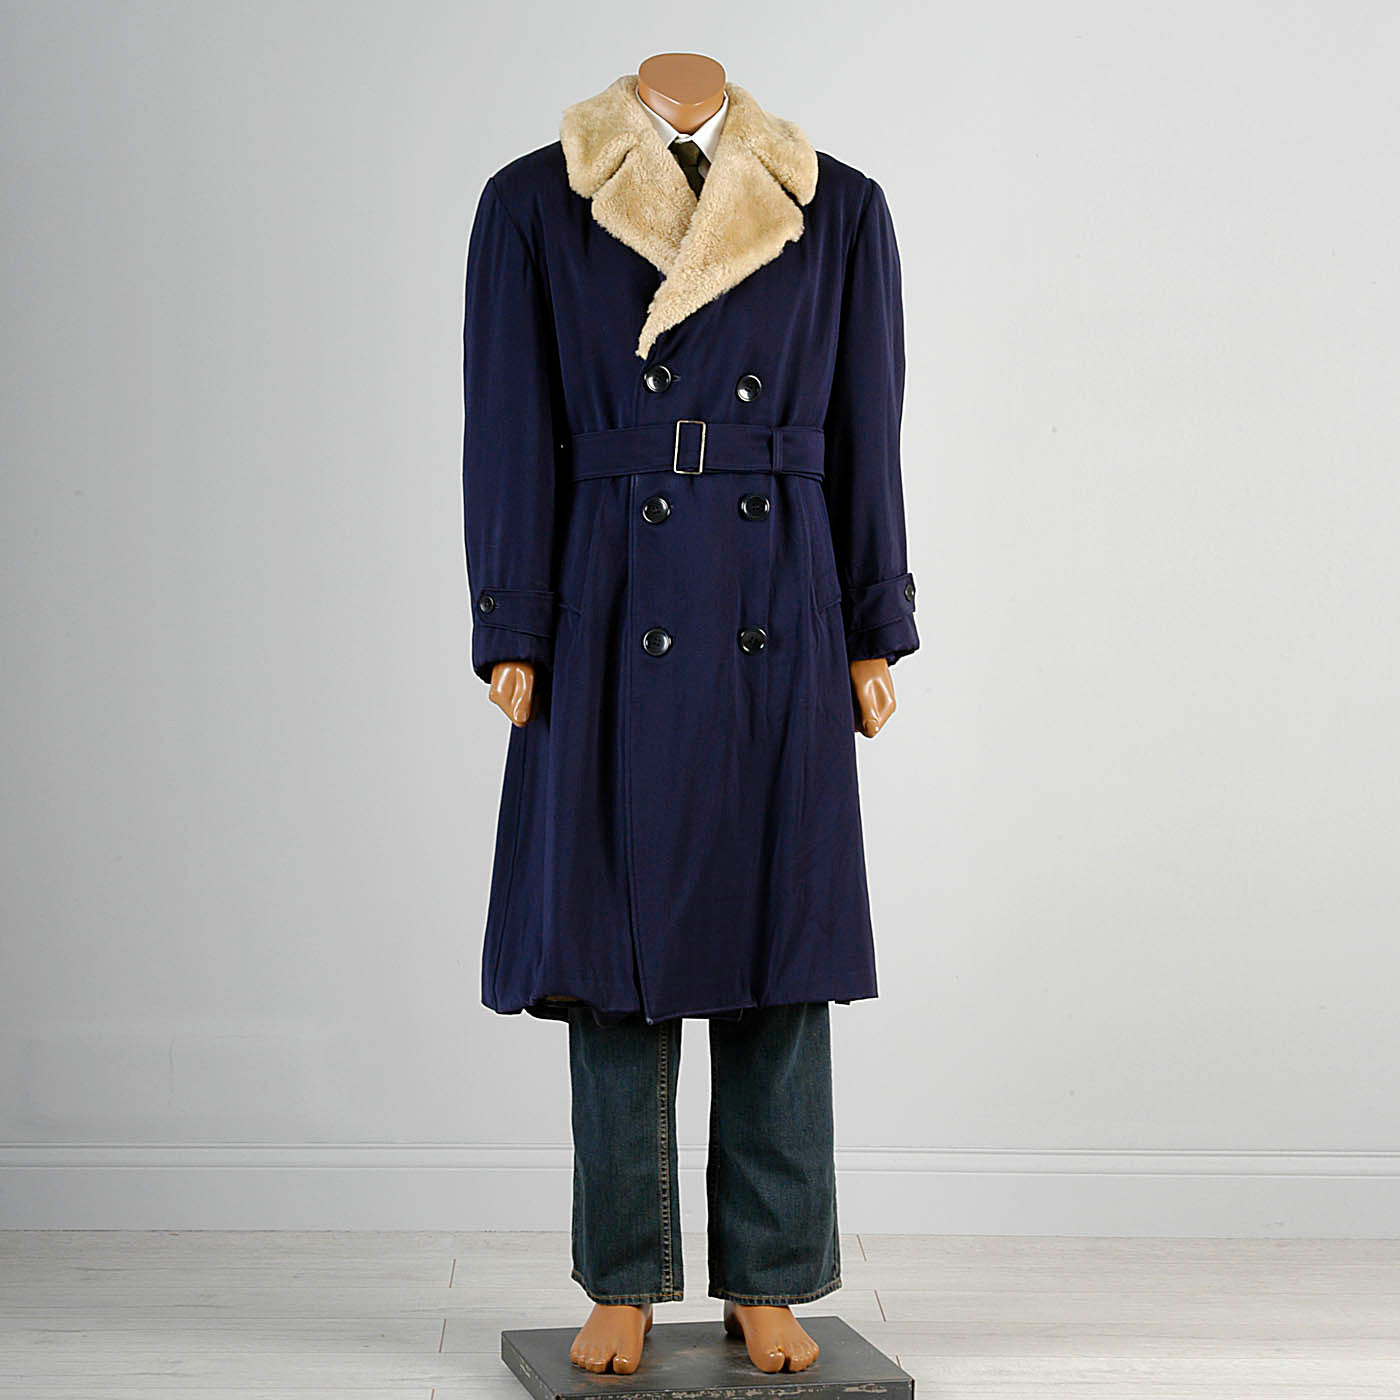 1950s Men's Heavy Duty Navy Blue Gabardine Winter Coat with Mouton Fur Collar